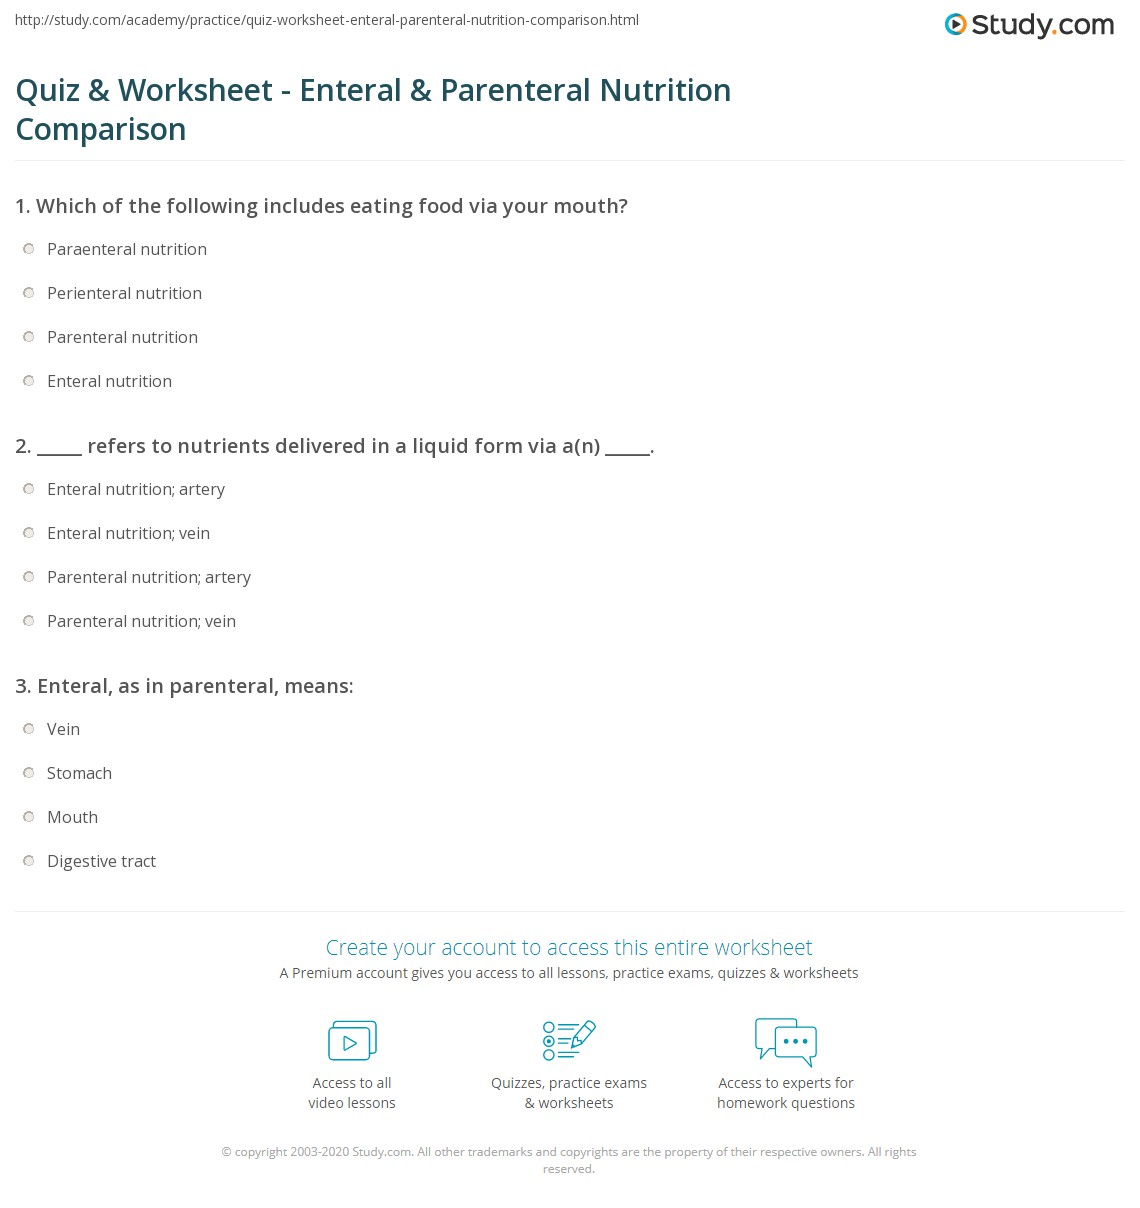 Quiz & Worksheet - Enteral & Parenteral Nutrition Comparison